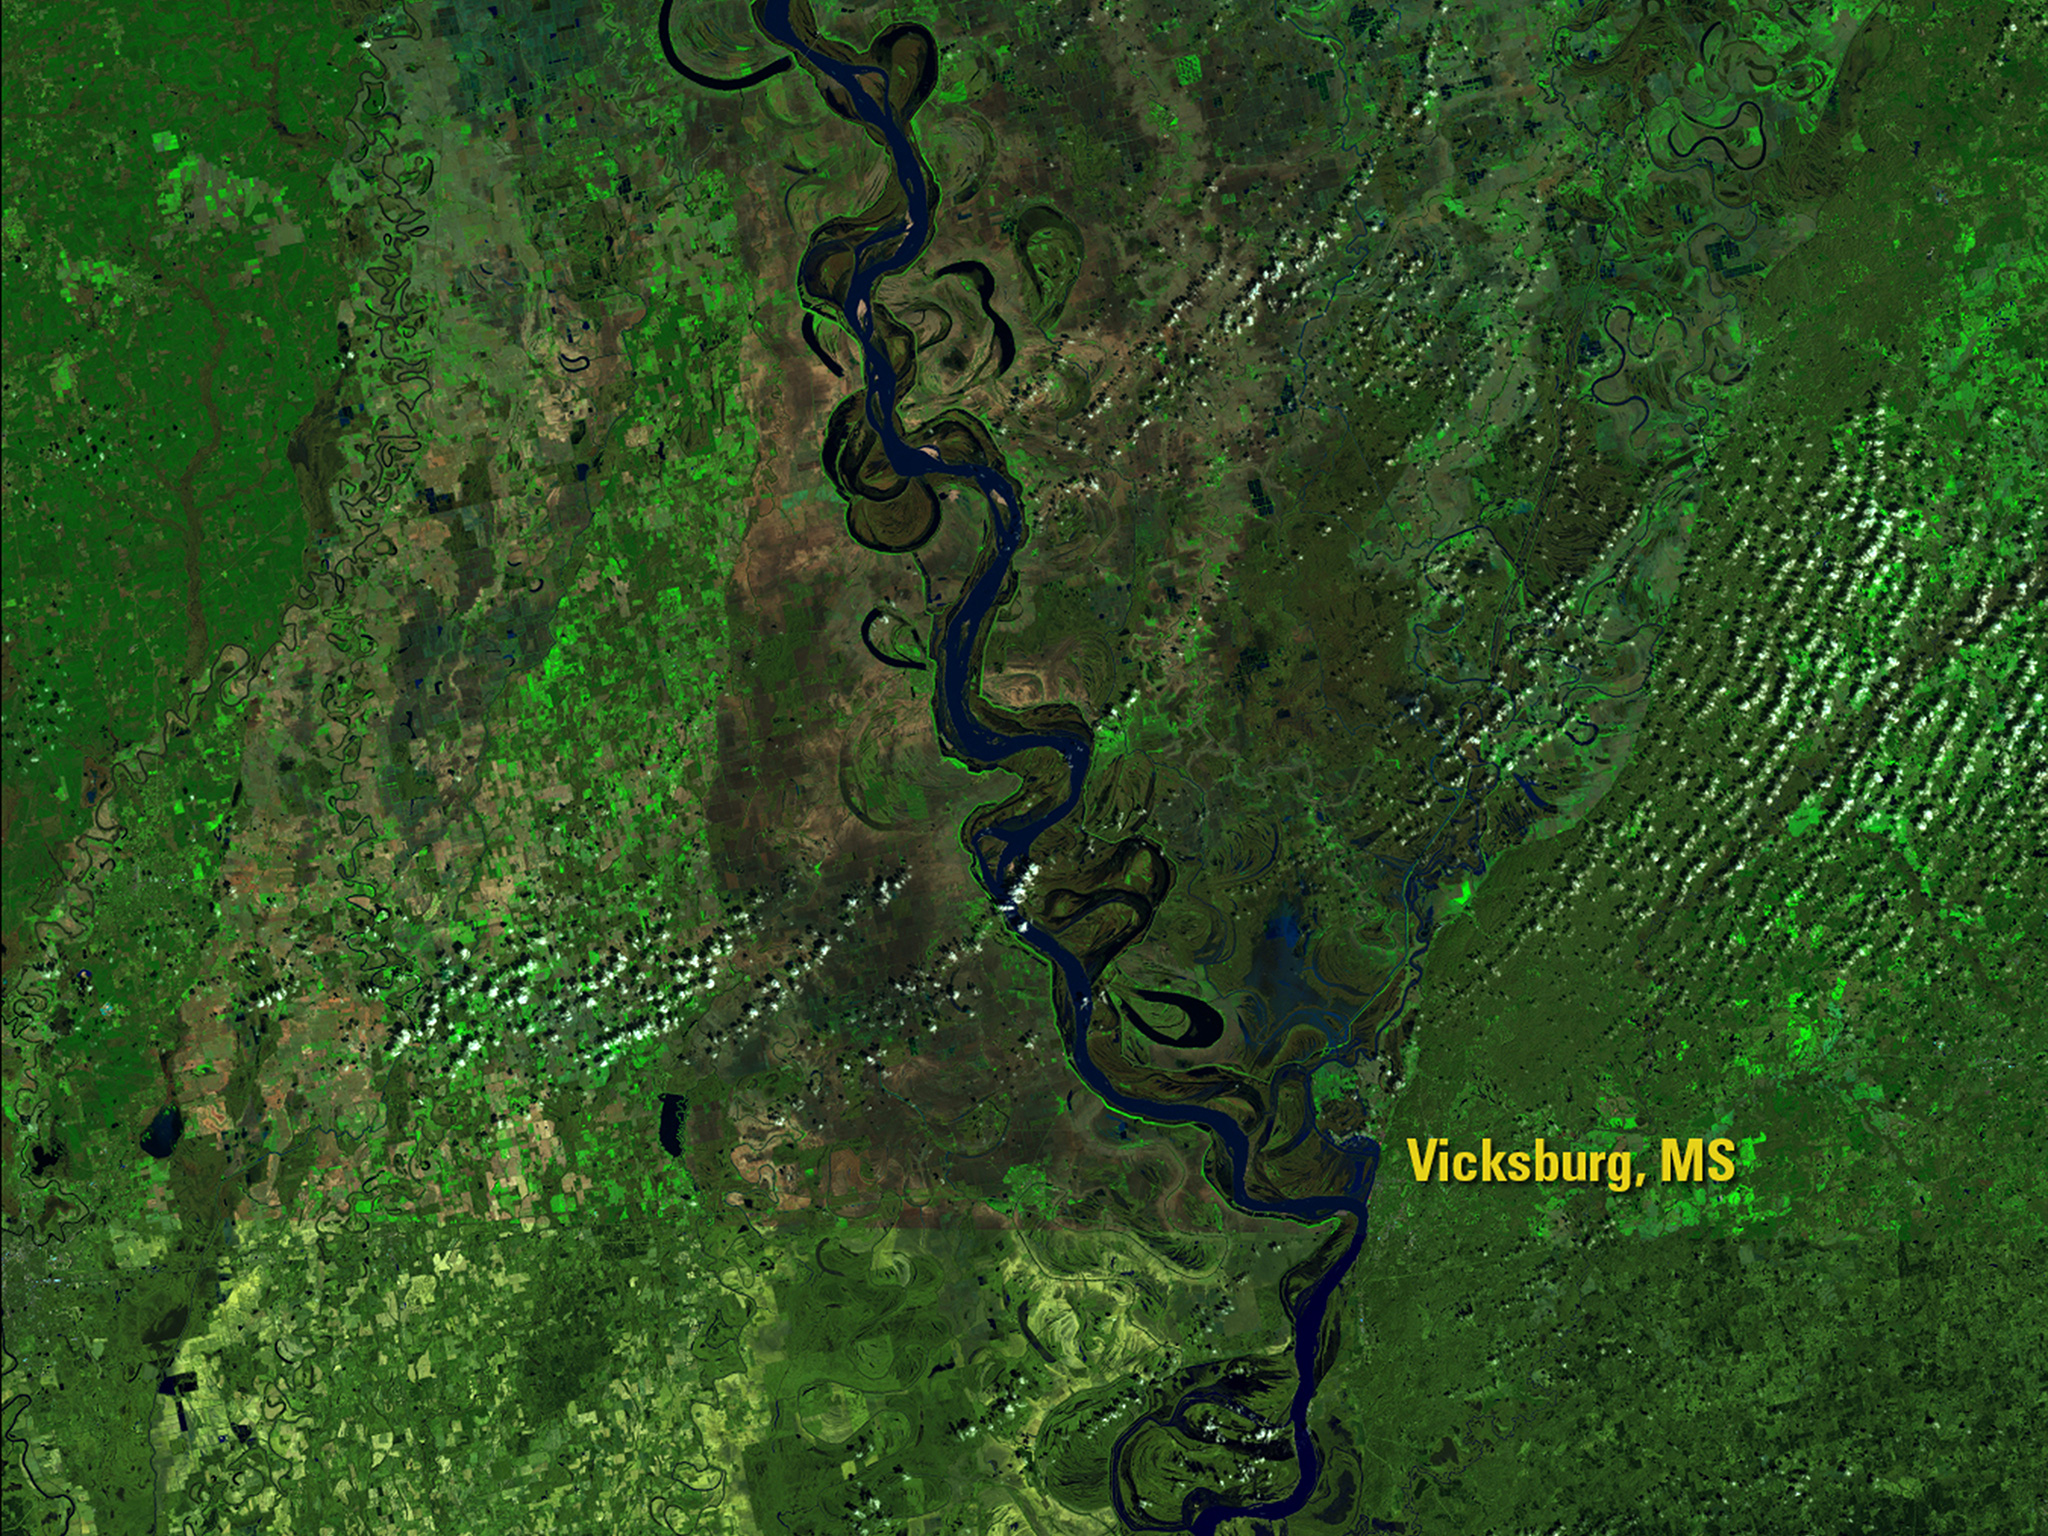 Images Of Change Climate Vital Signs The Planet Columbia Bench Grinder Wiring Diagram Flooding Mississippi River Southern Us